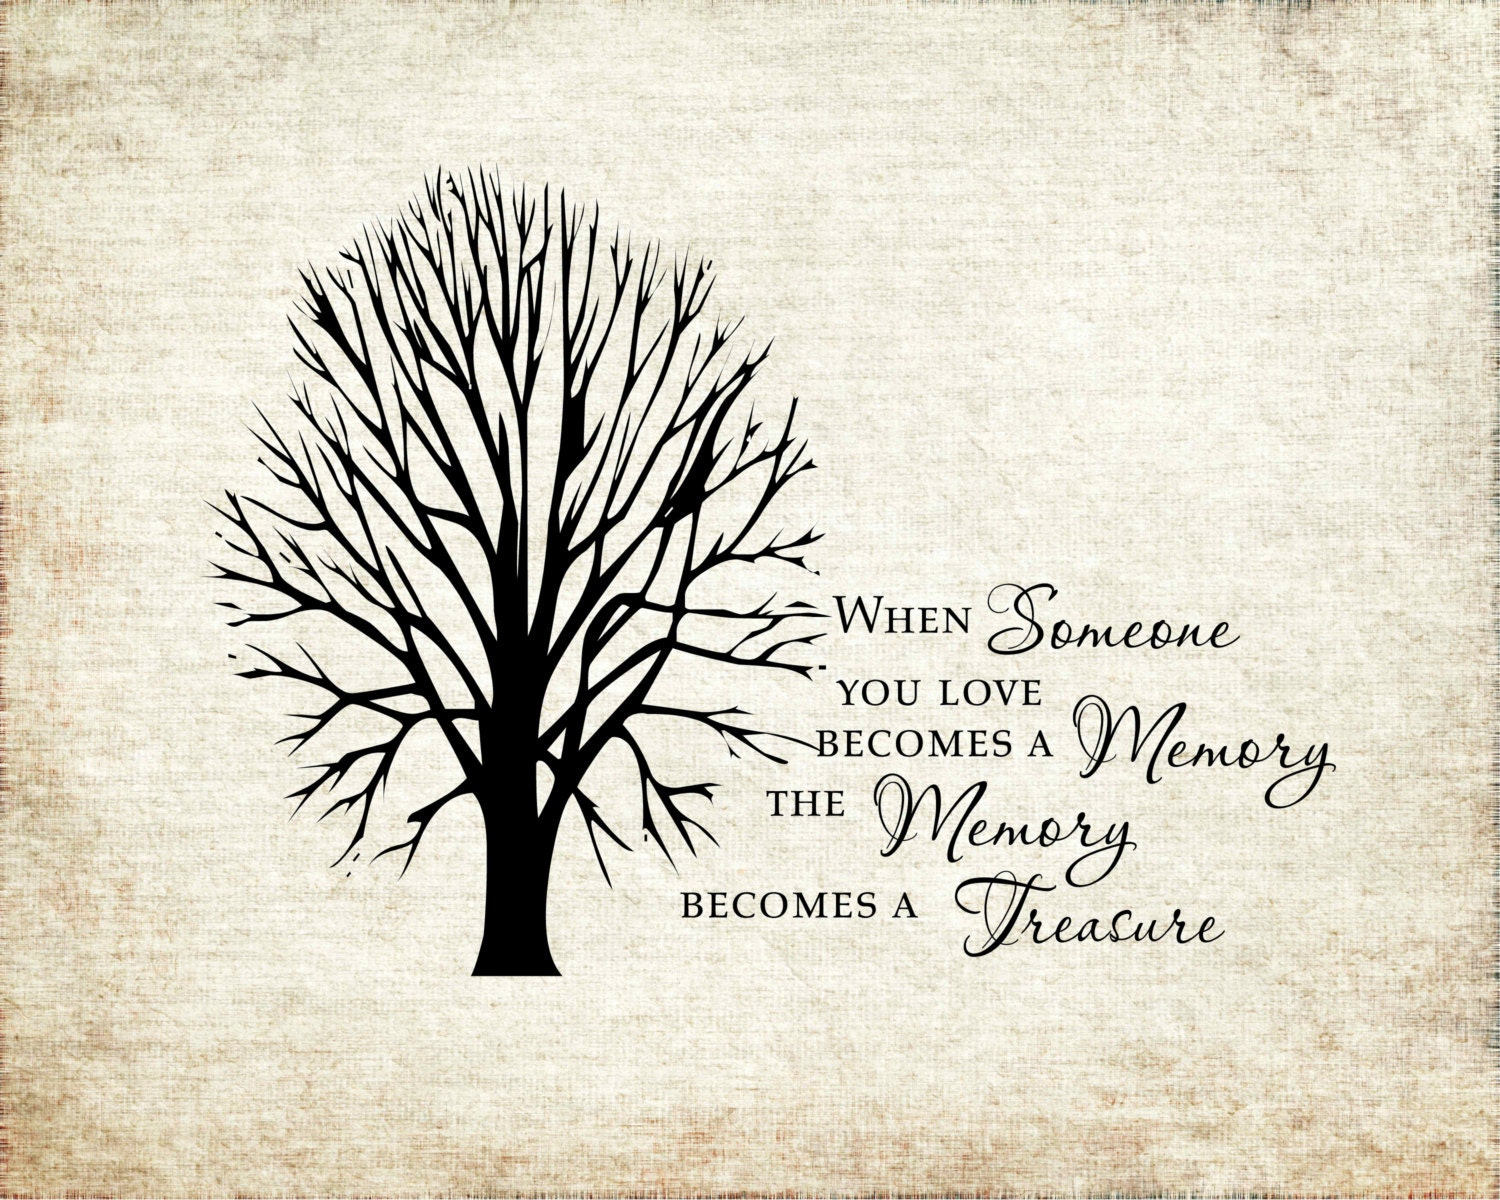 When Someone You Love Becomes A Memory That Memory Becomes A: When Someone You Love Becomes A Memory The Memory Becomes A